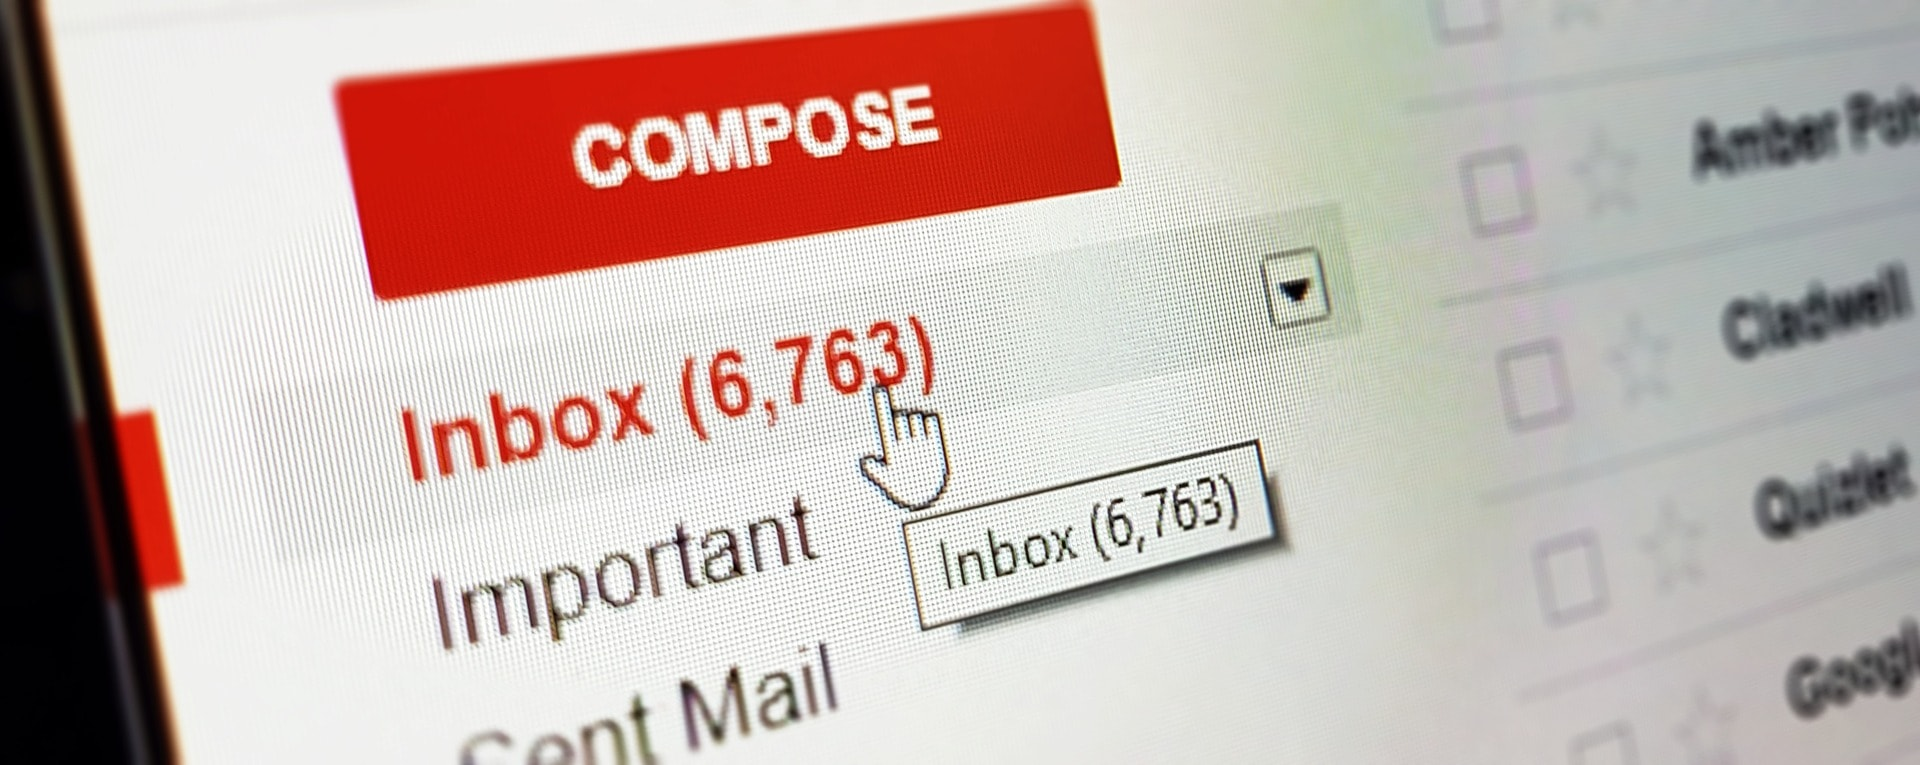 The Gmail interface with 6,000+ emails in the inbox